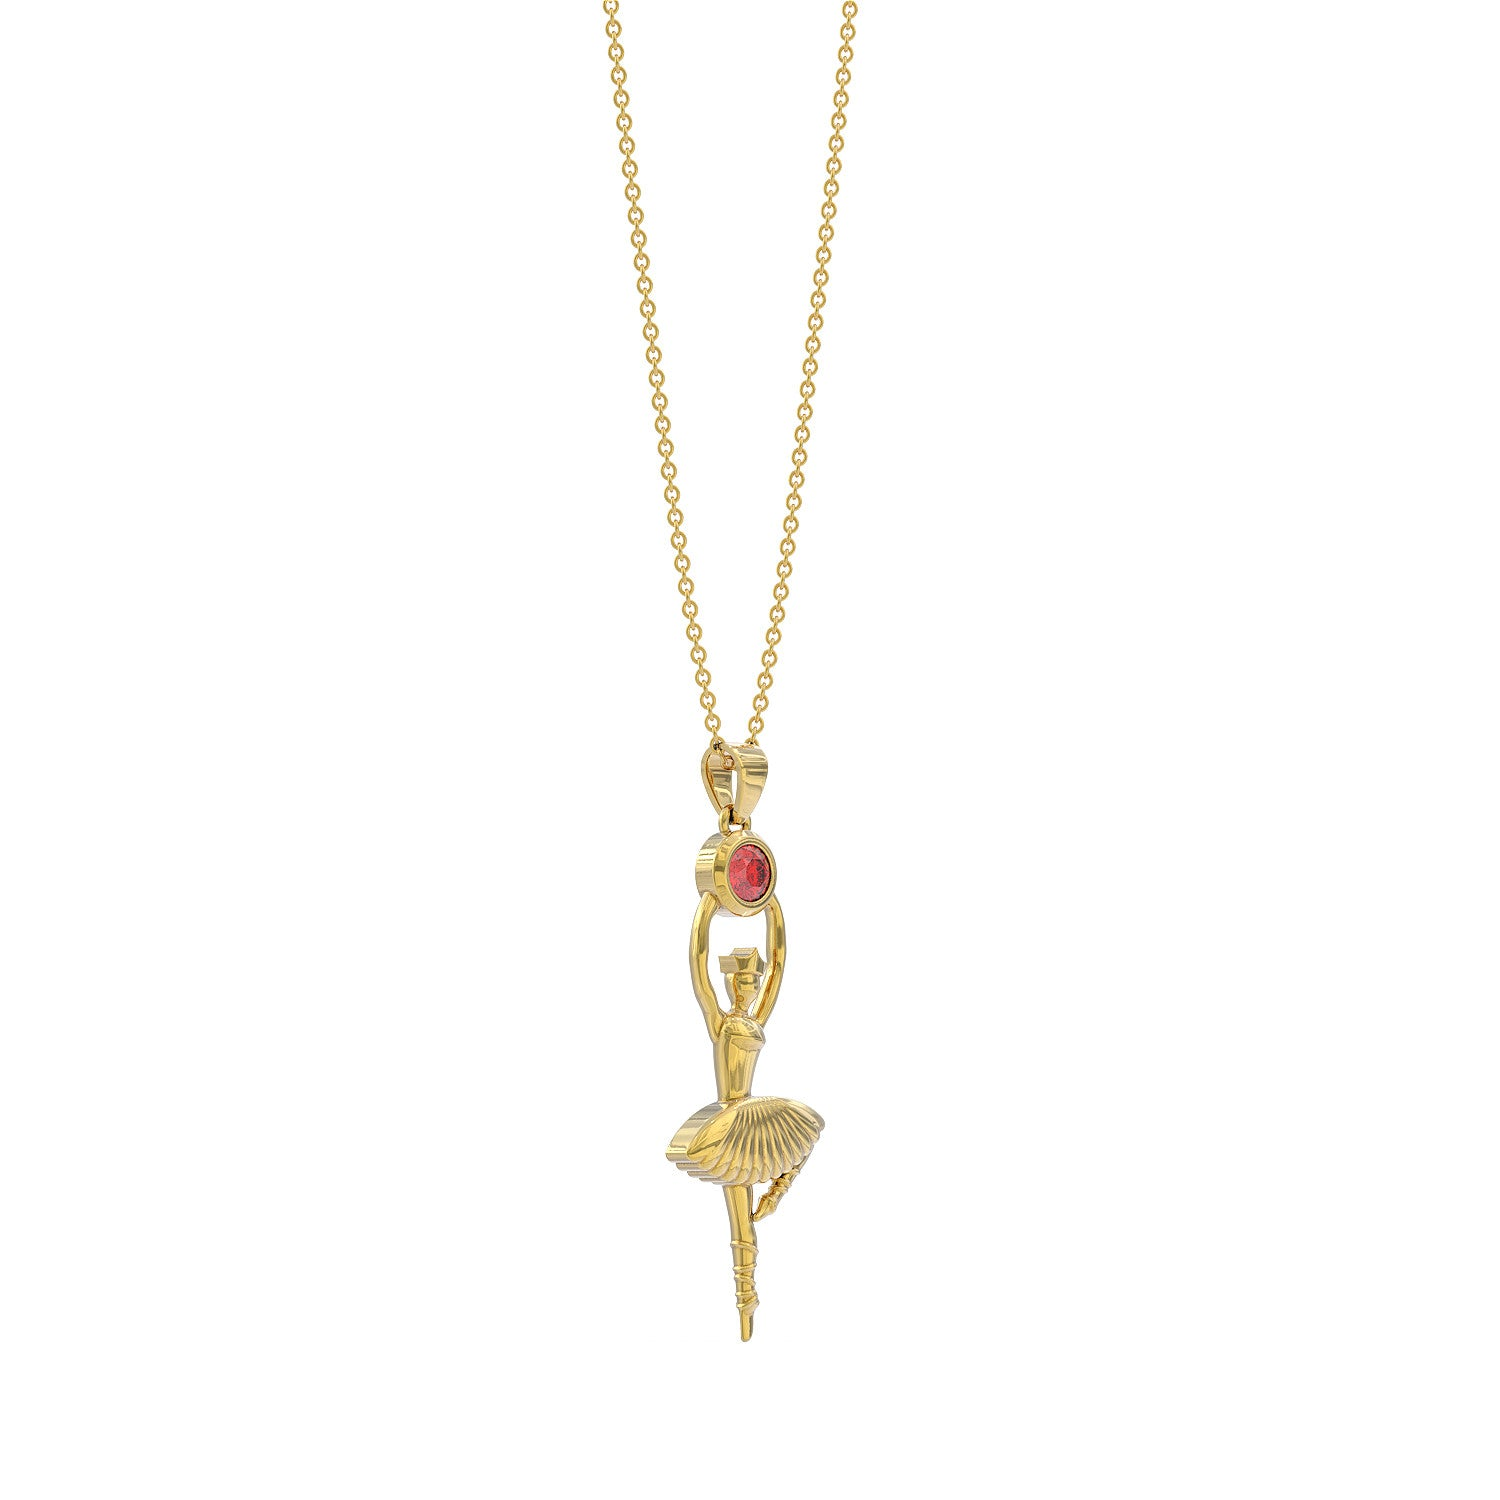 Retiré Arms 5th Birthstone Necklace - LIMITED EDITION